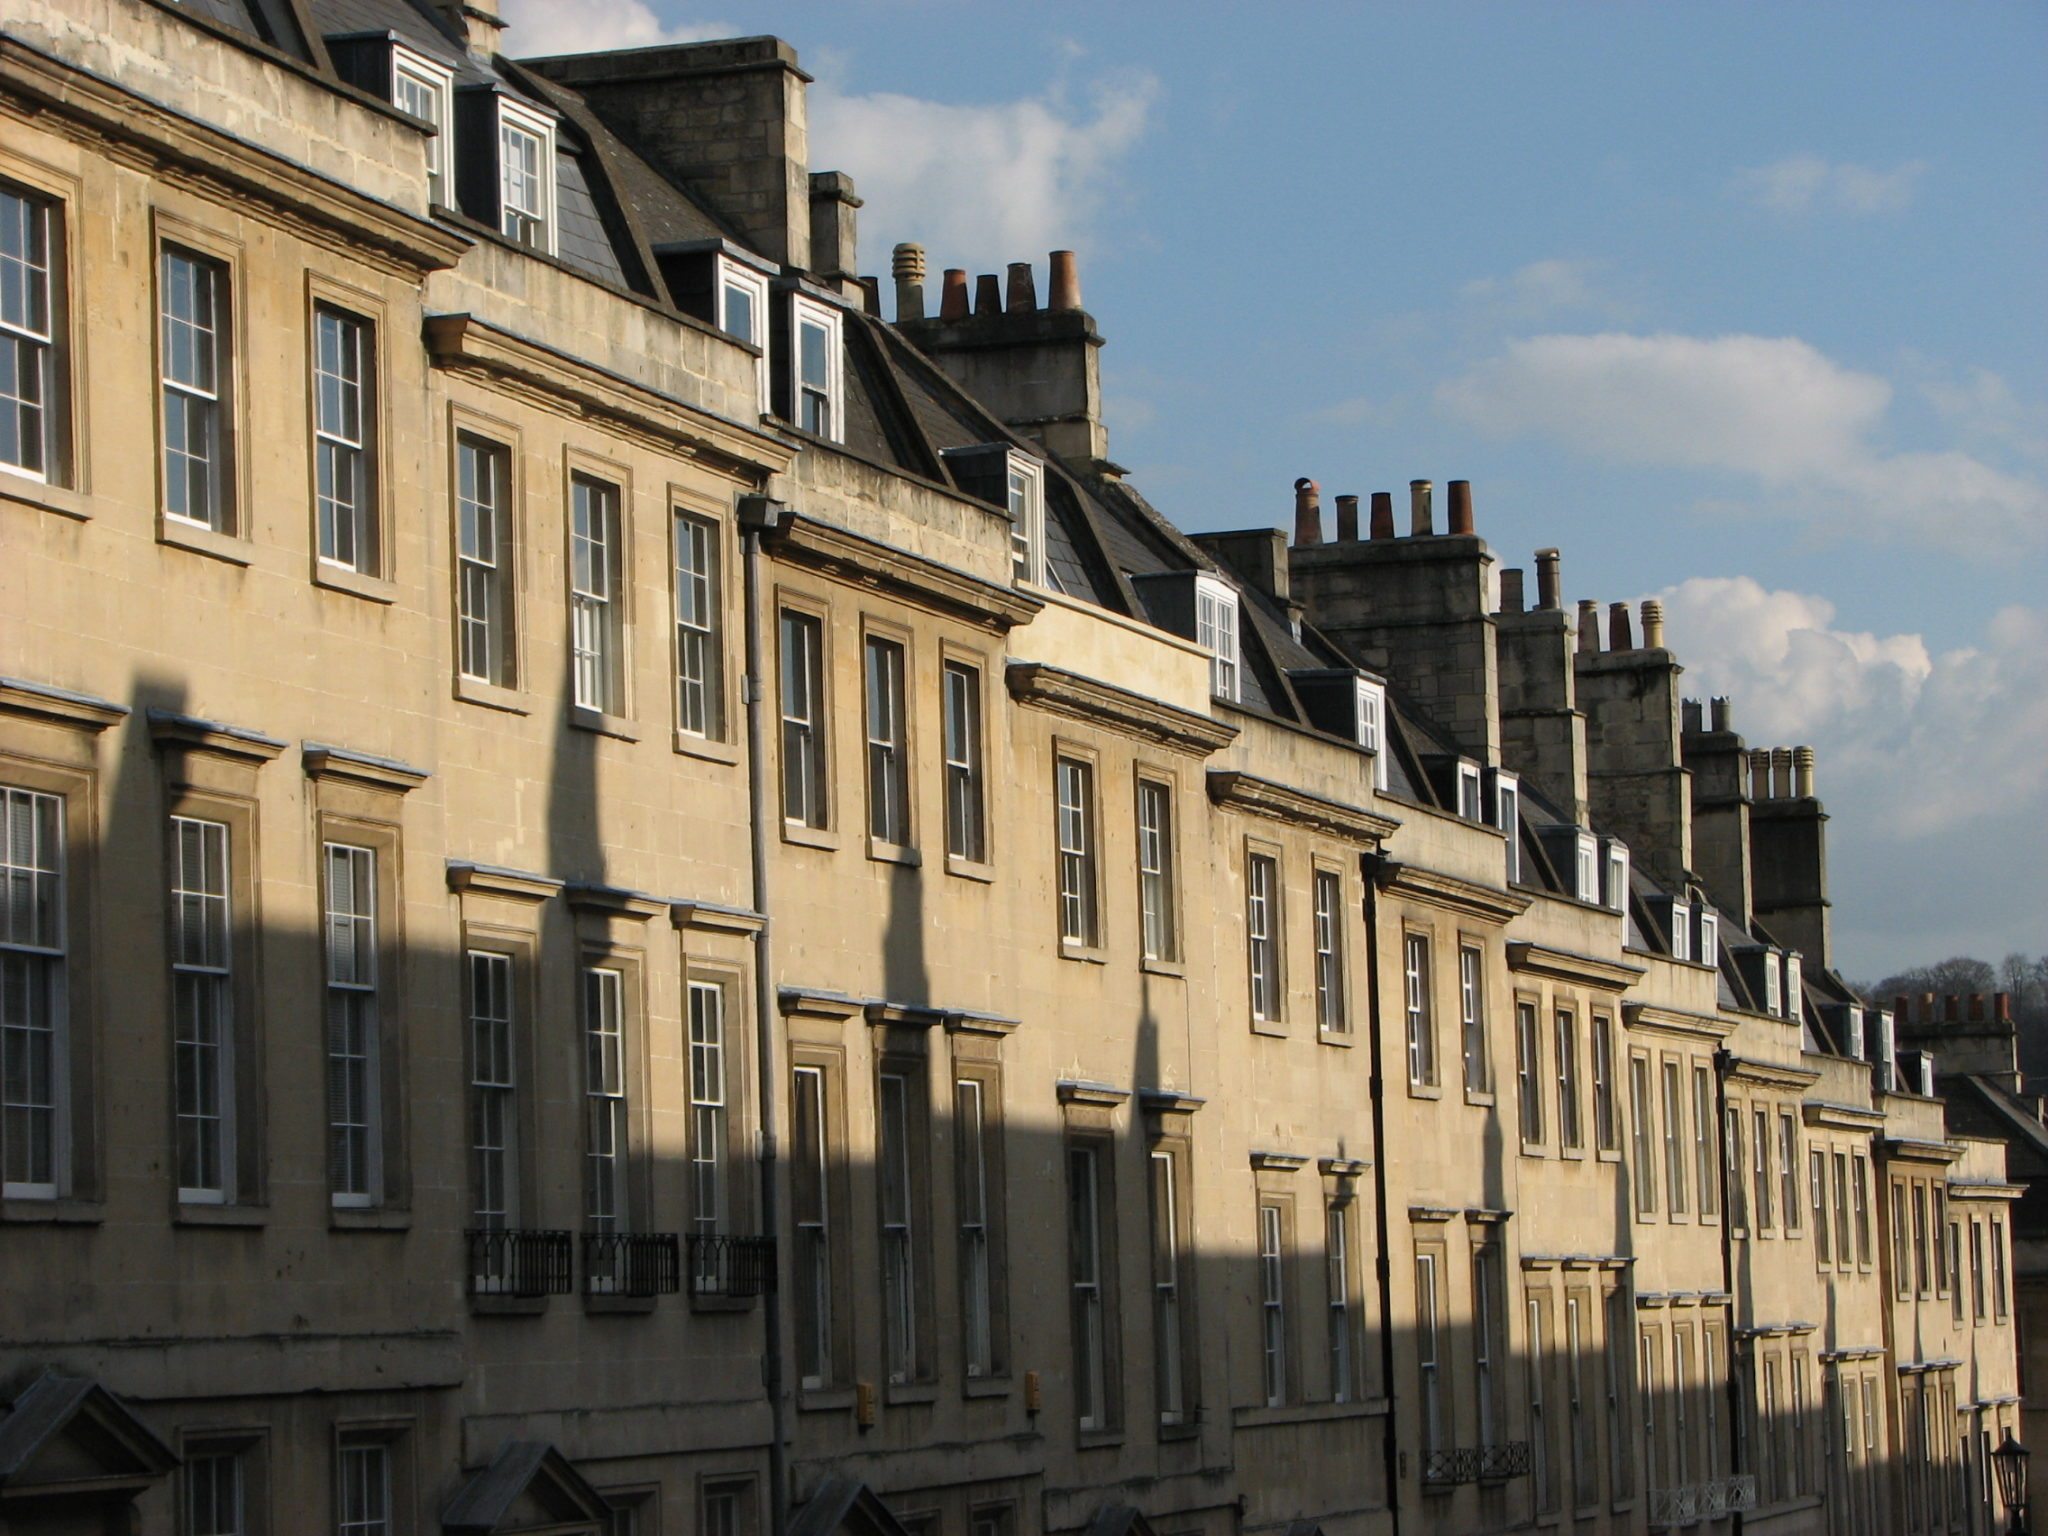 Architecture in Bath, England